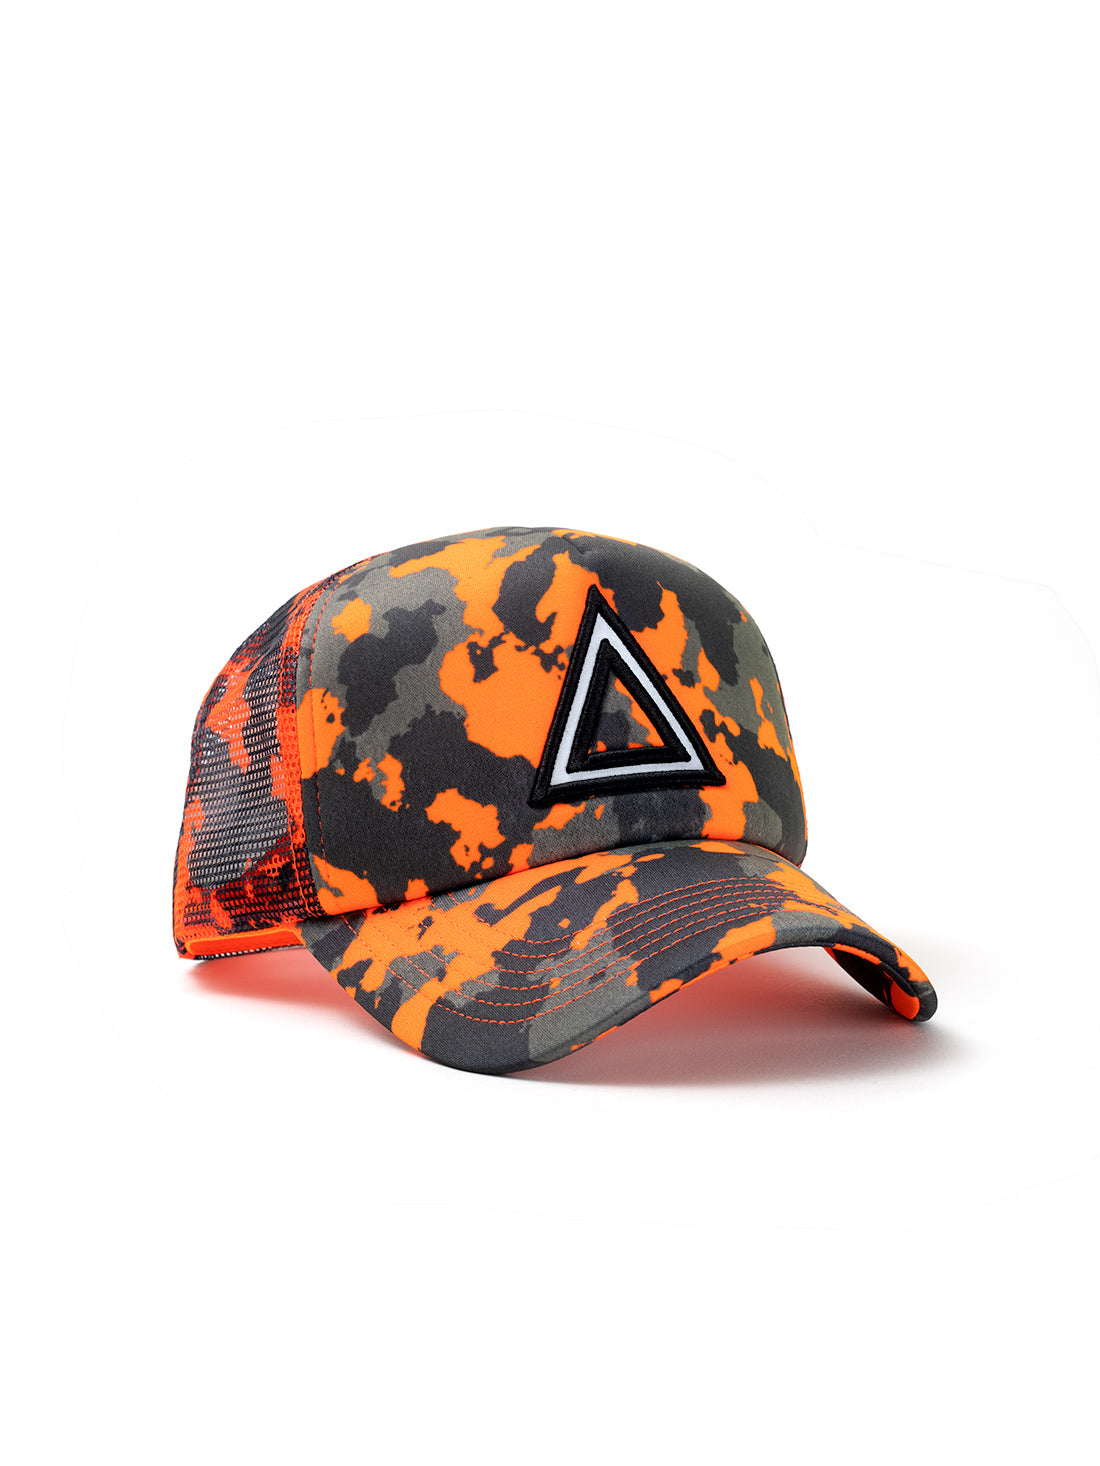 ORANGE NEON TRUCKER TRIANGULO